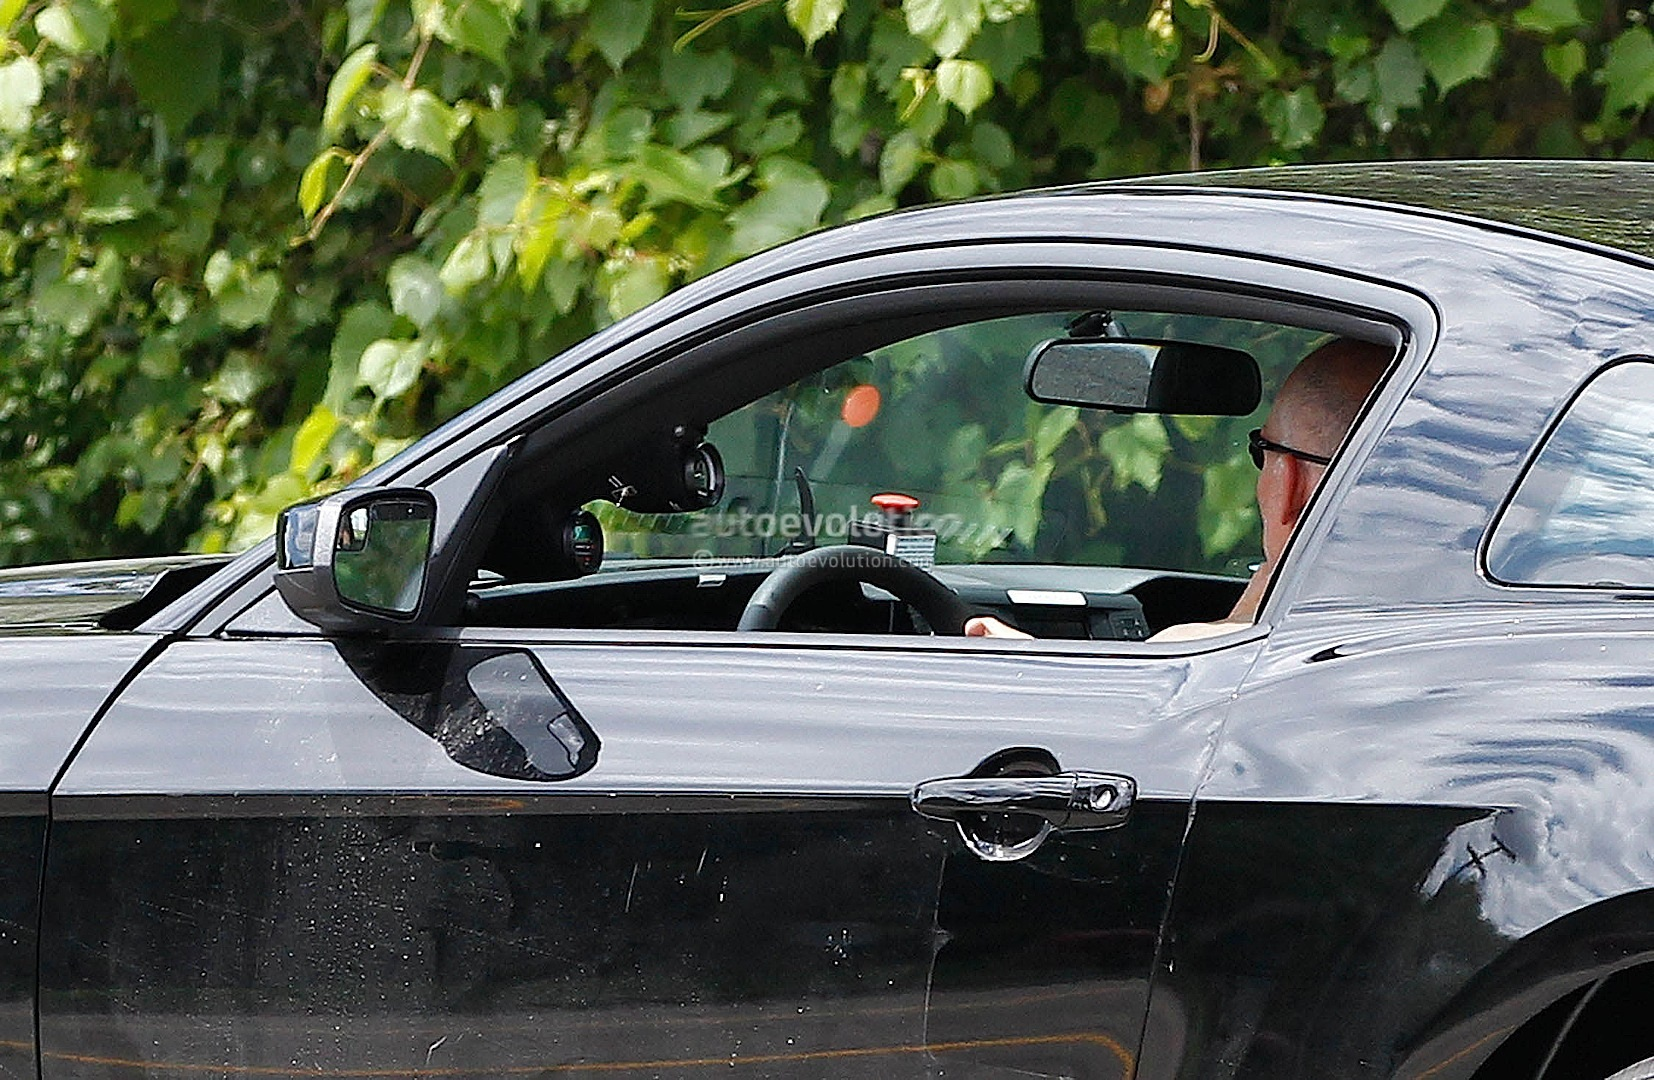 2015 Ford Mustang Test Mule Spy Shots #4/6